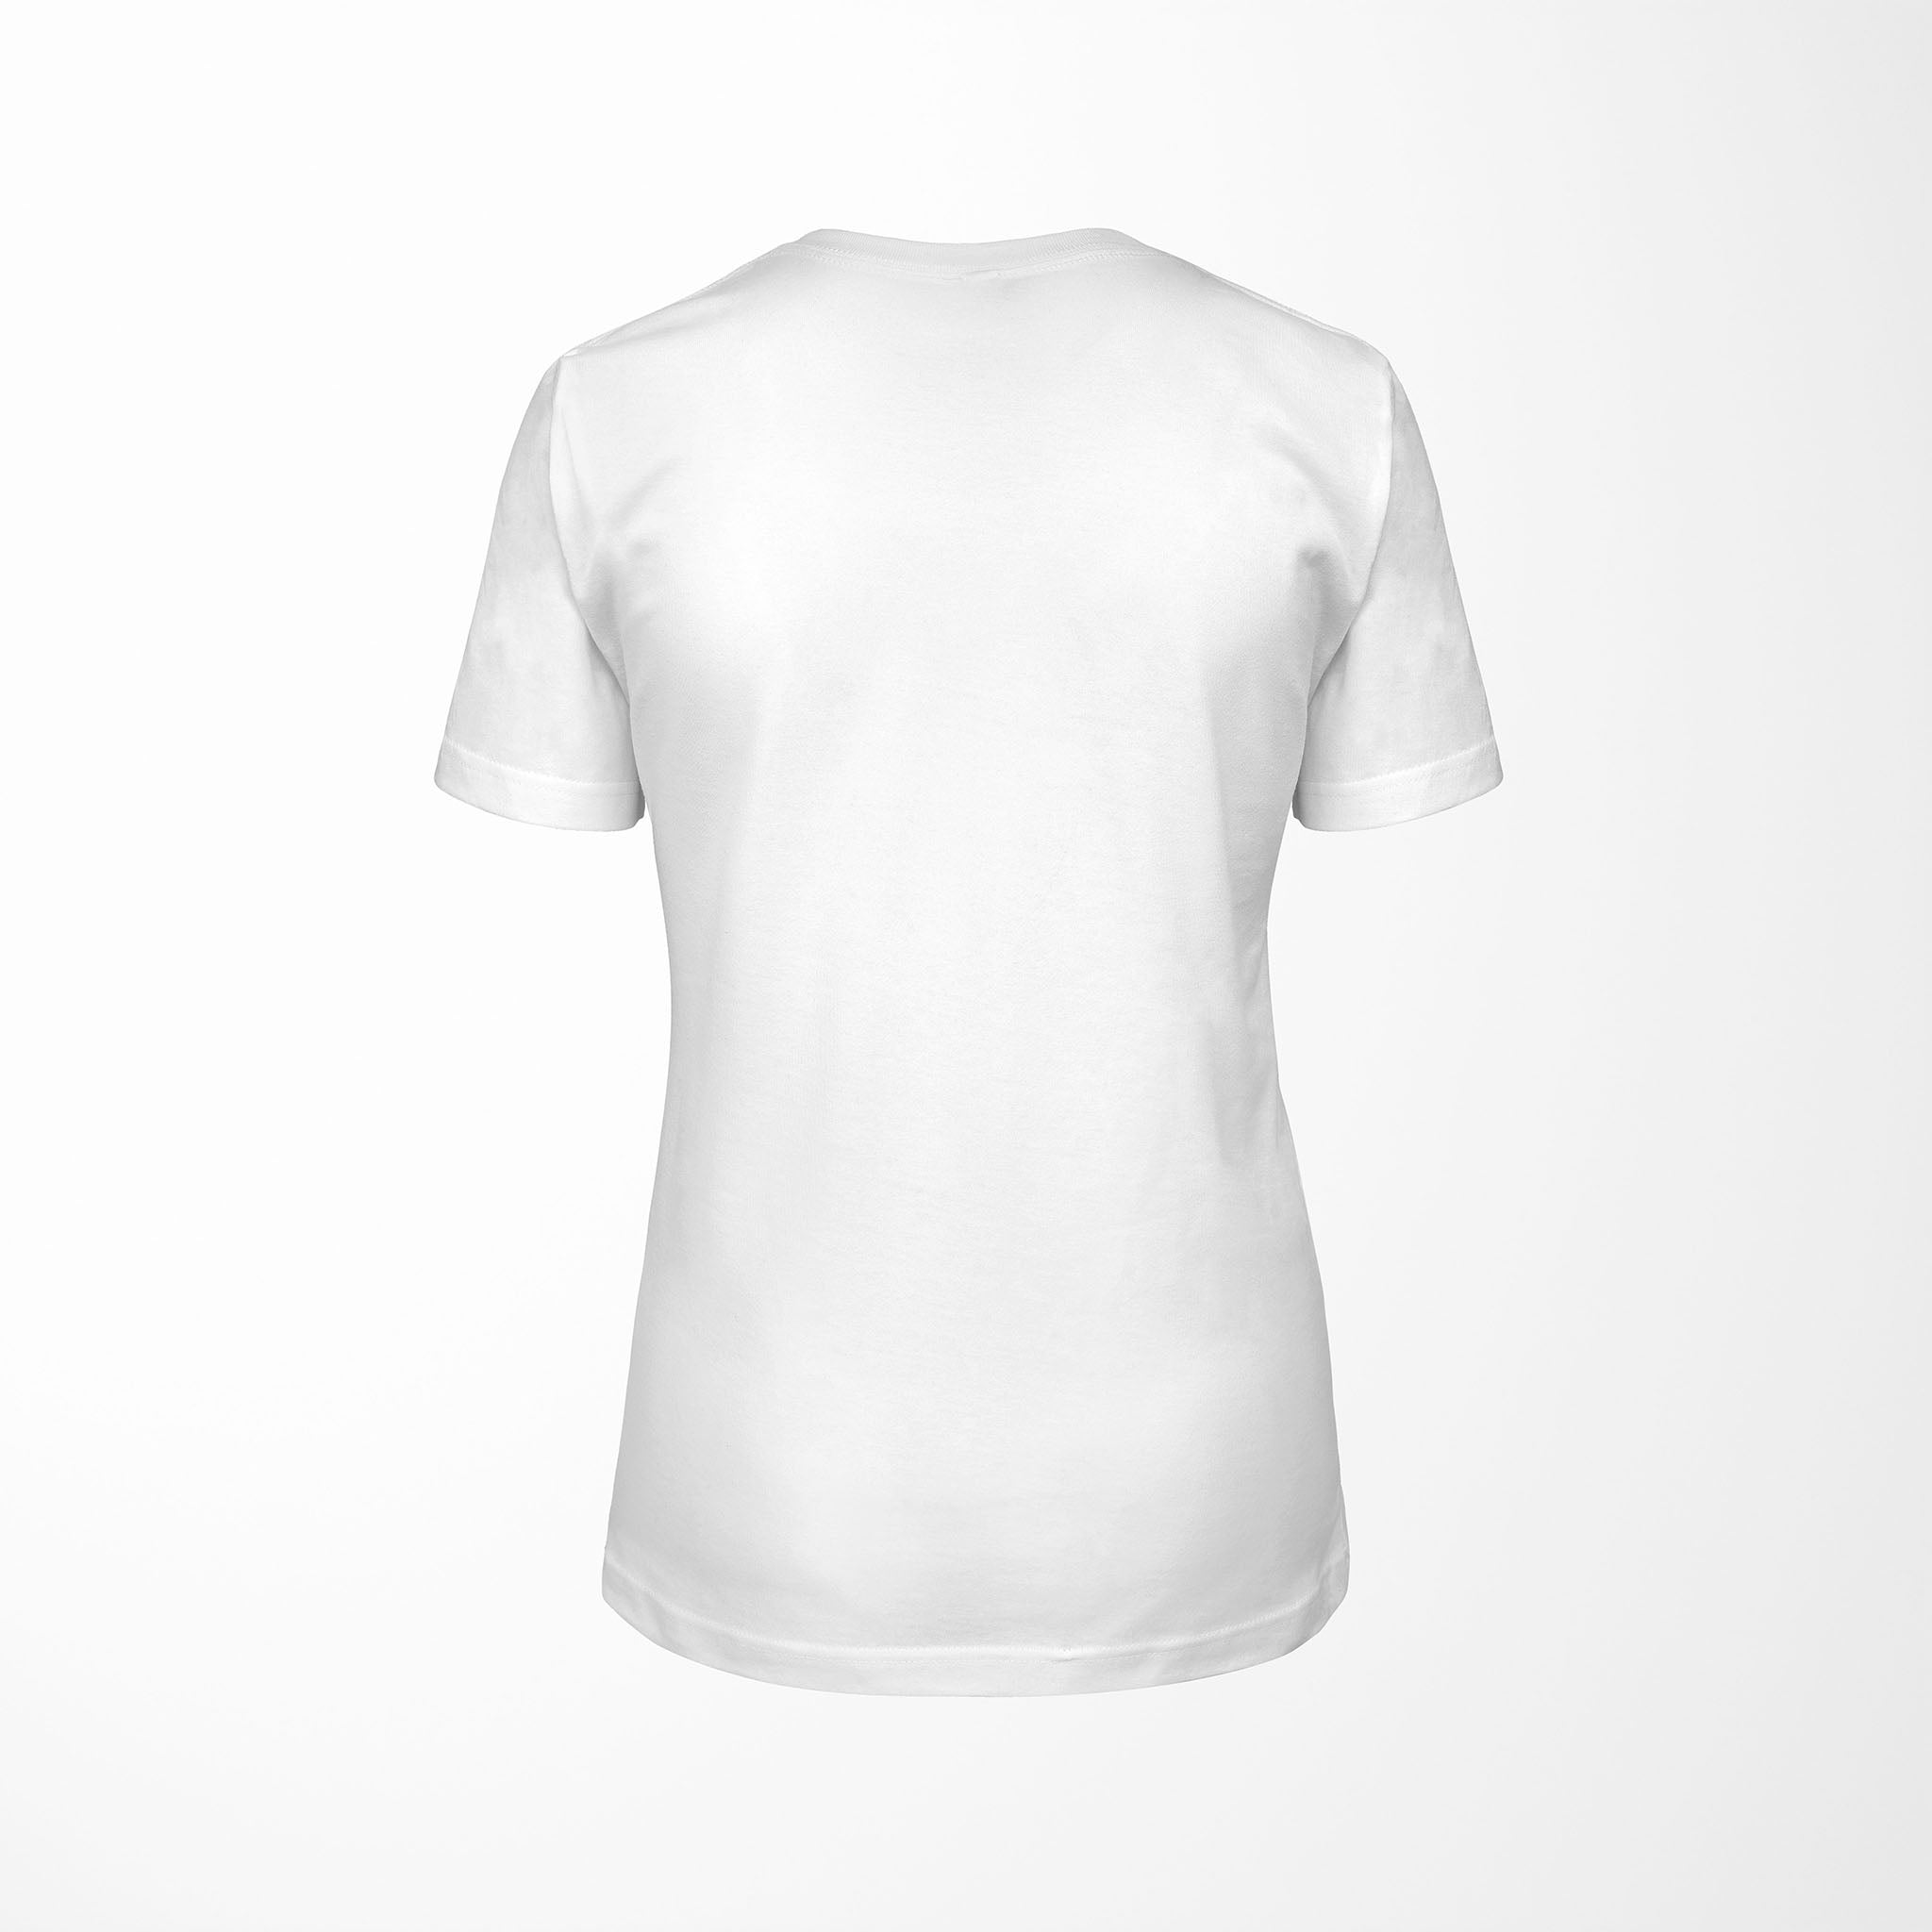 ARTIFACT Relaxed Fit Women's 100% Cotton White T-Shirt back